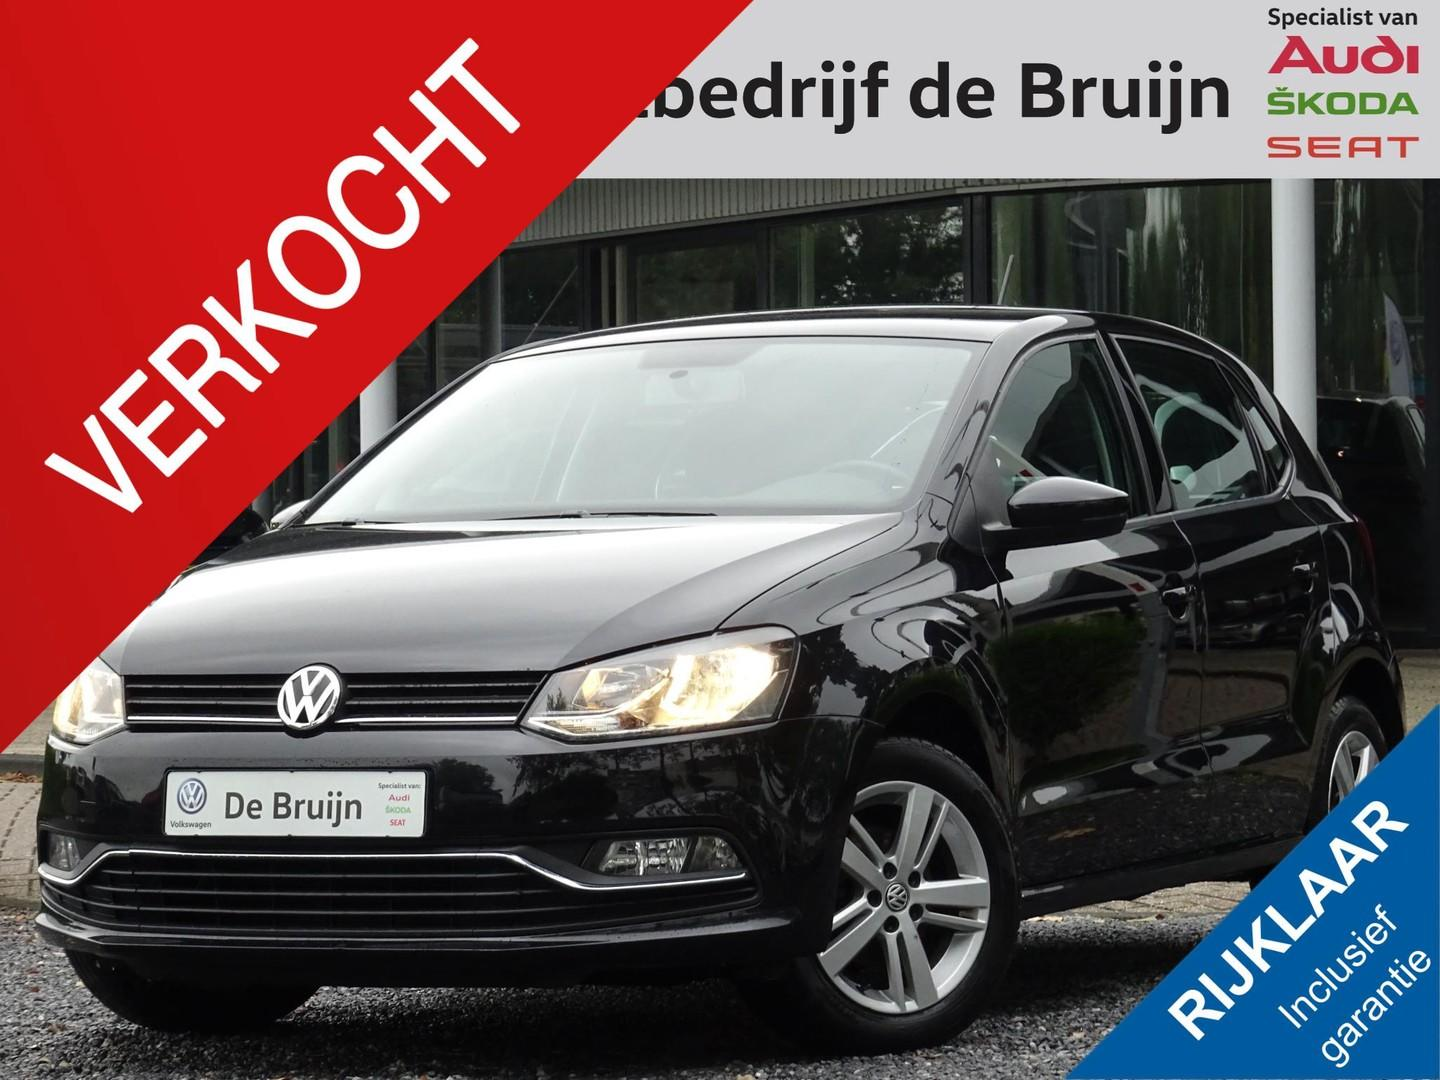 Volkswagen Polo First edition 1.2 tsi 90pk 5d (lm,airco,cruise)